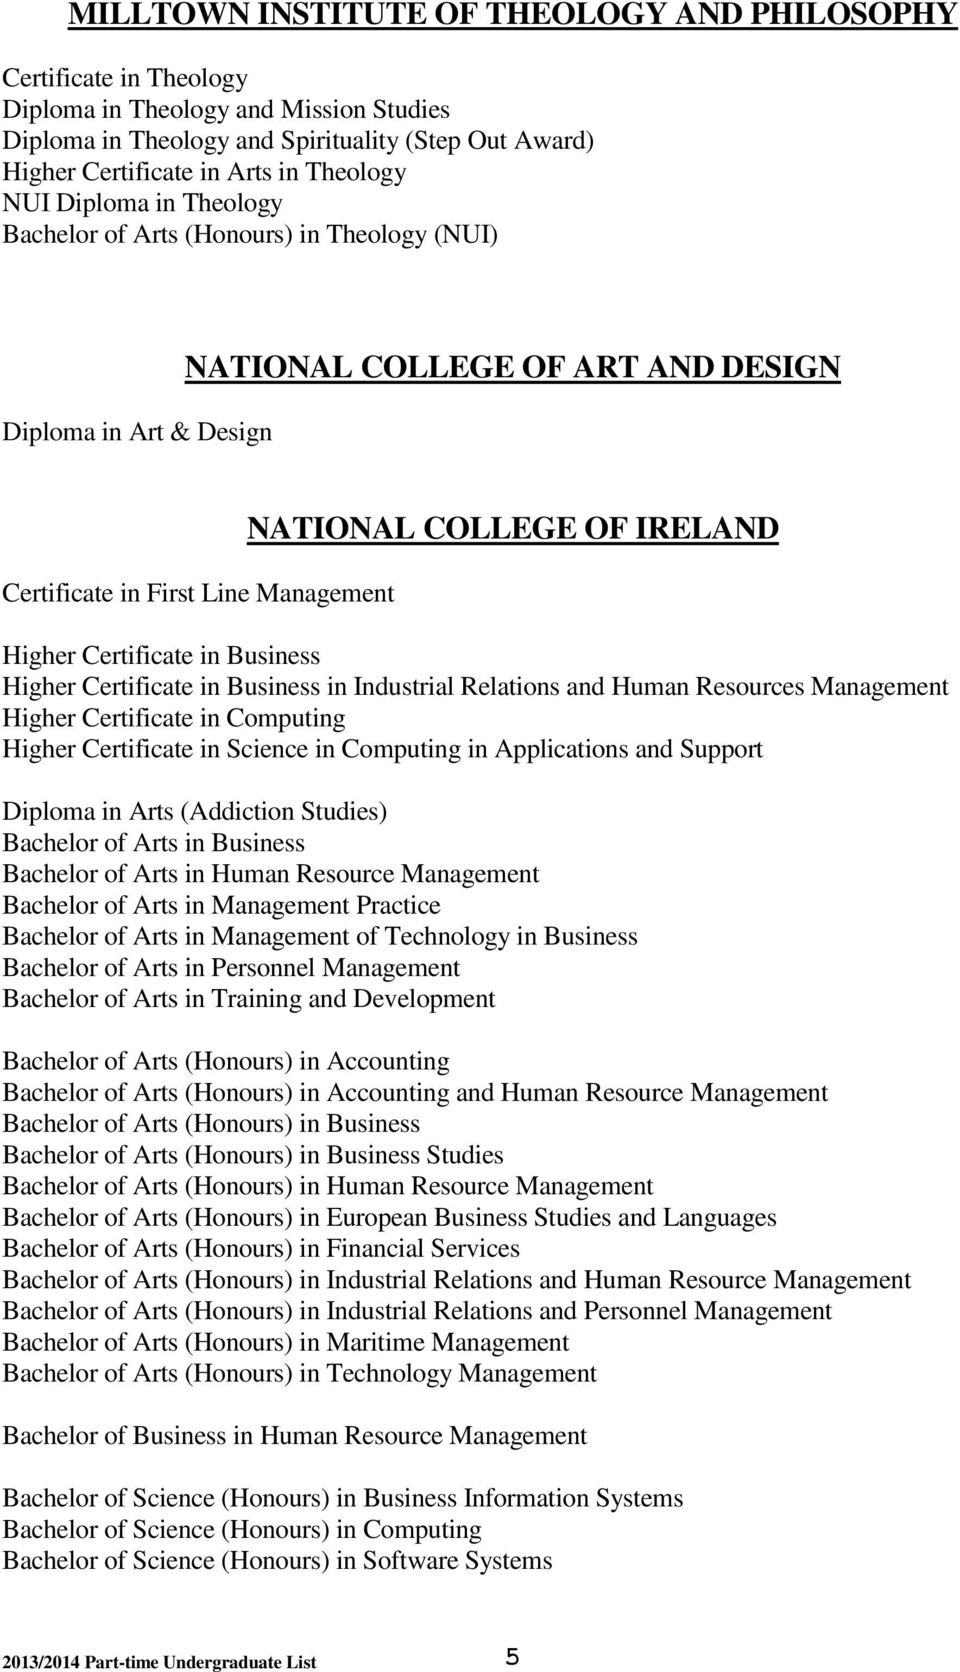 IRELAND Higher Certificate in Business Higher Certificate in Business in Industrial Relations and Human Resources Management Higher Certificate in Computing Higher Certificate in Science in Computing